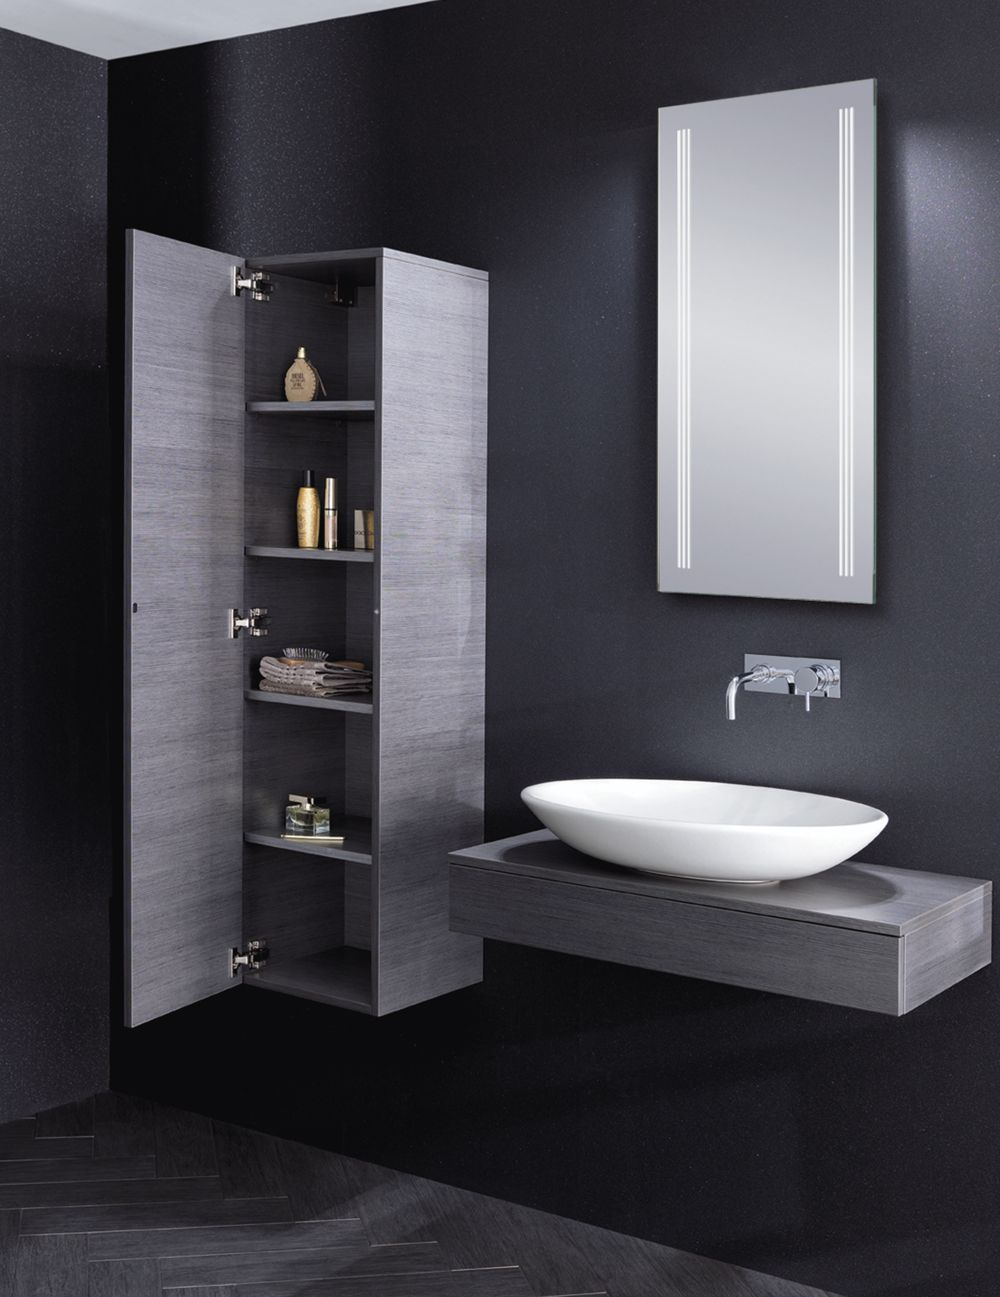 Bauhaus countertop wall hung vanity basin Edge in Steel with